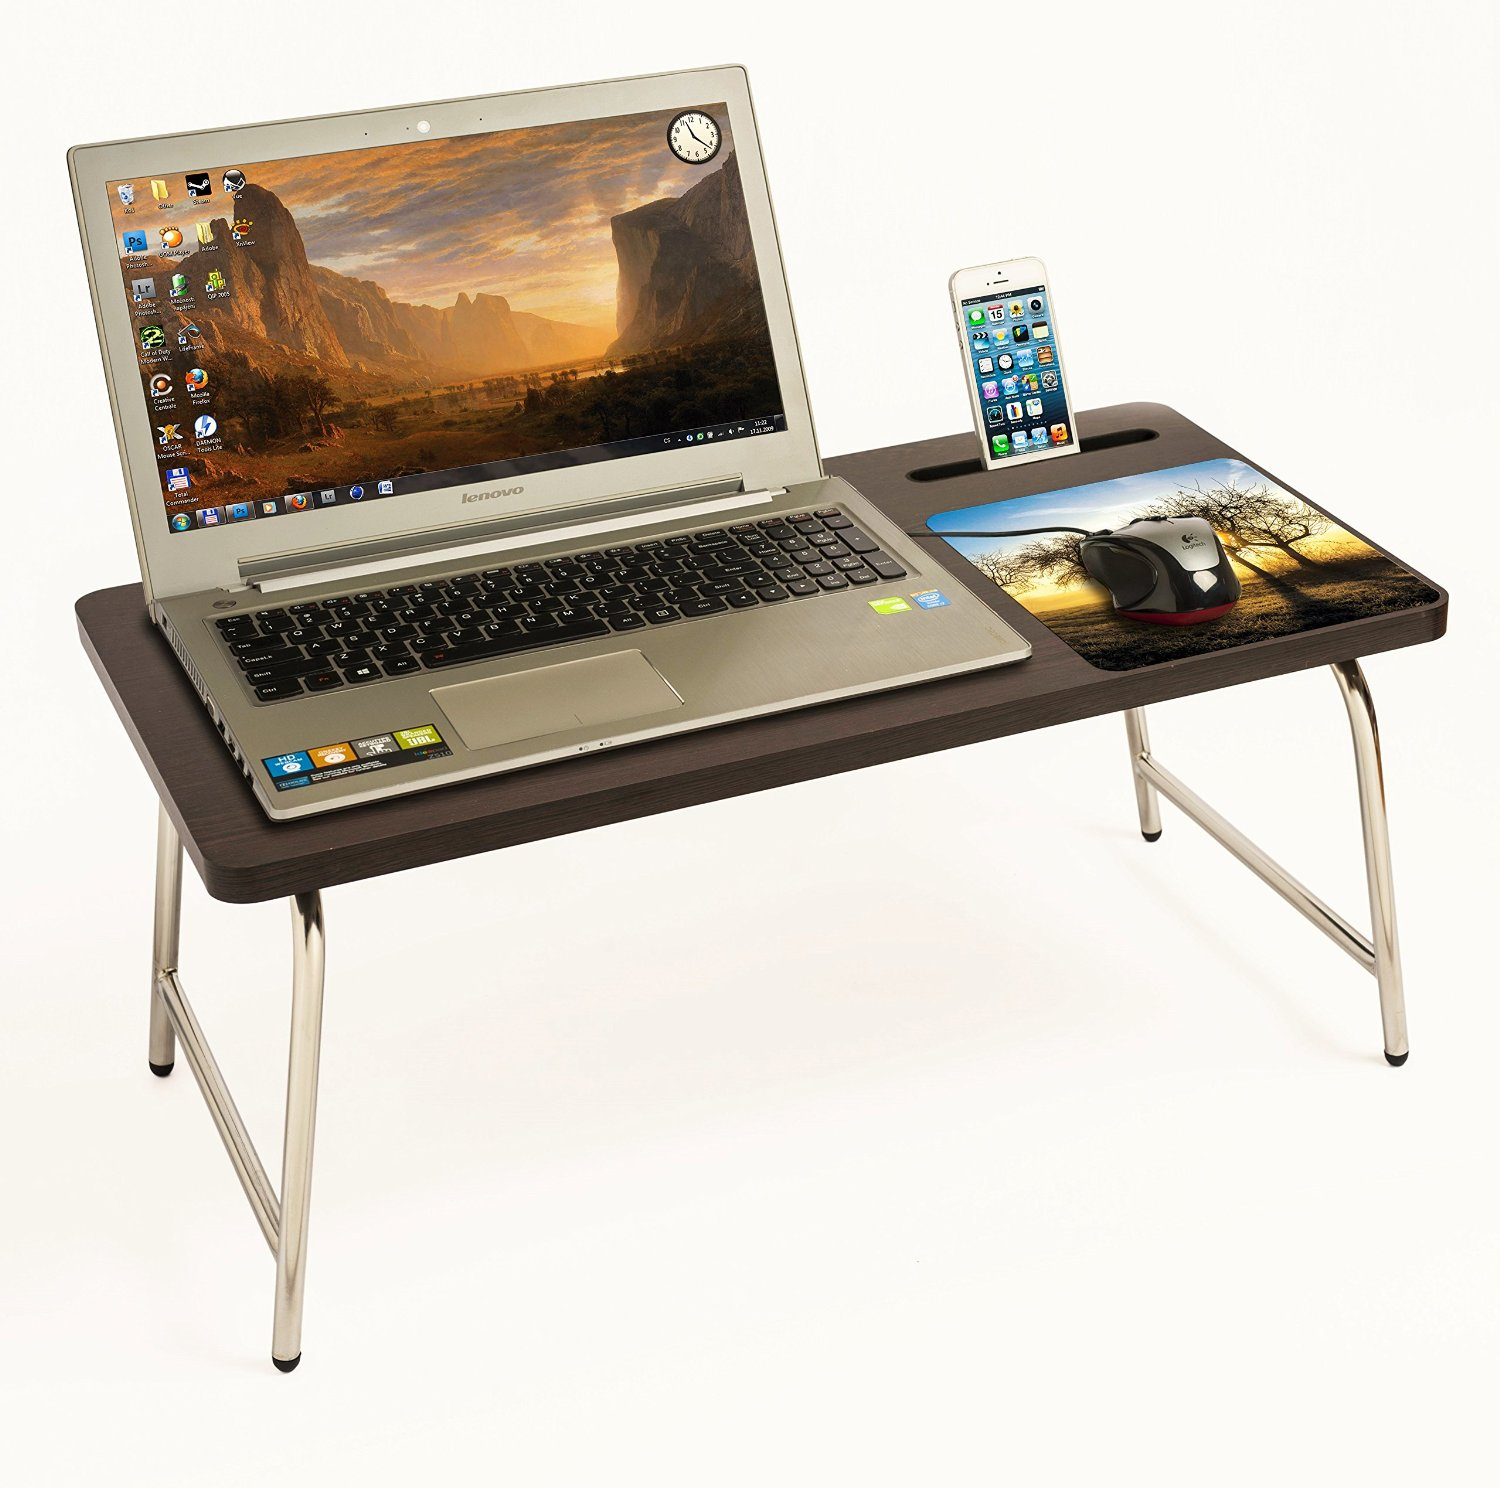 Riona Bluewud Bed Laptop Table With Inbuilt Mobile Stand